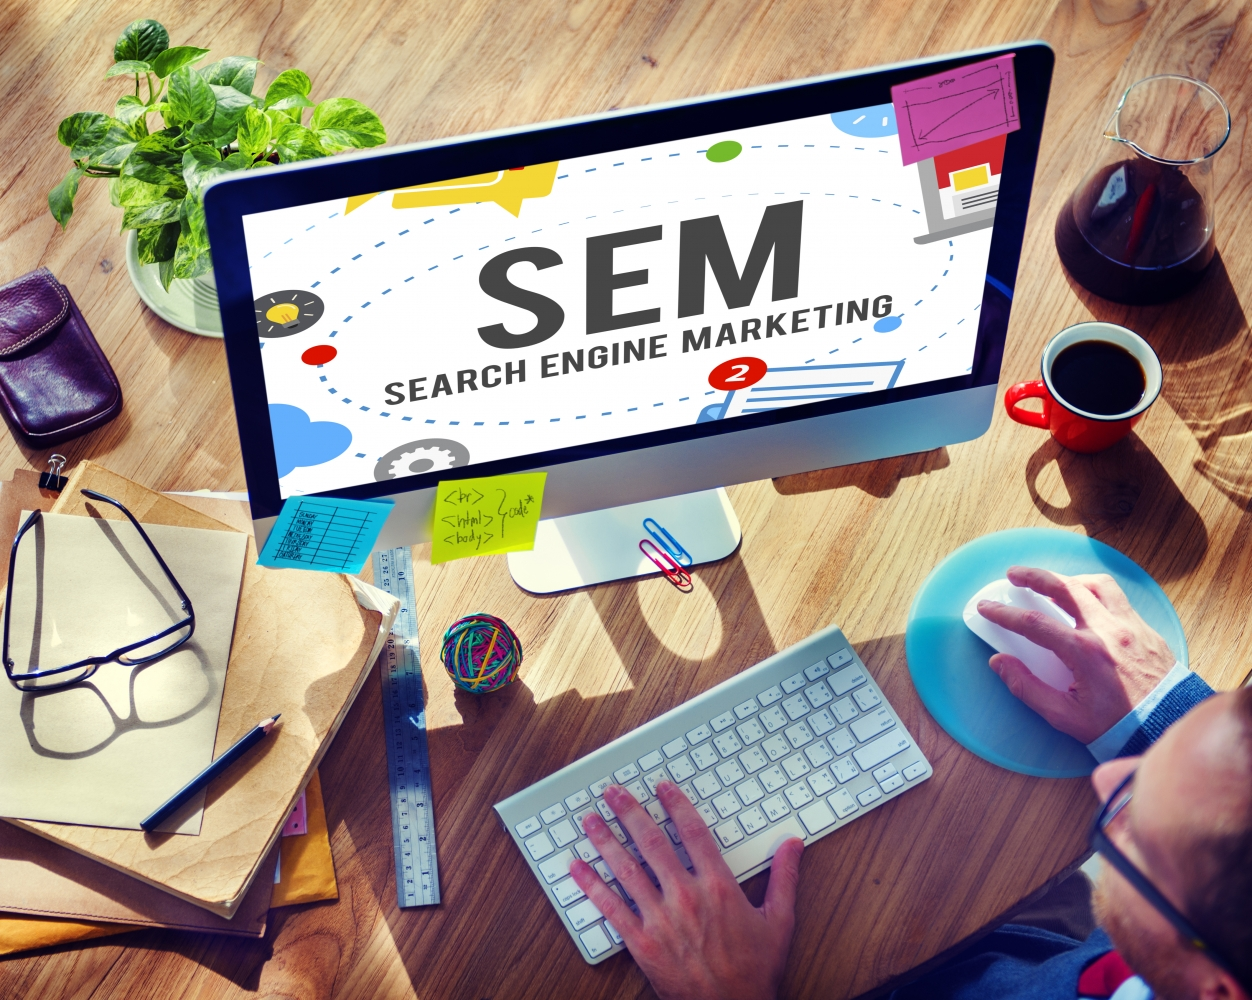 Cyber Monday - Get 30% OFF Super Support - Search Engine Marketing (SEM)